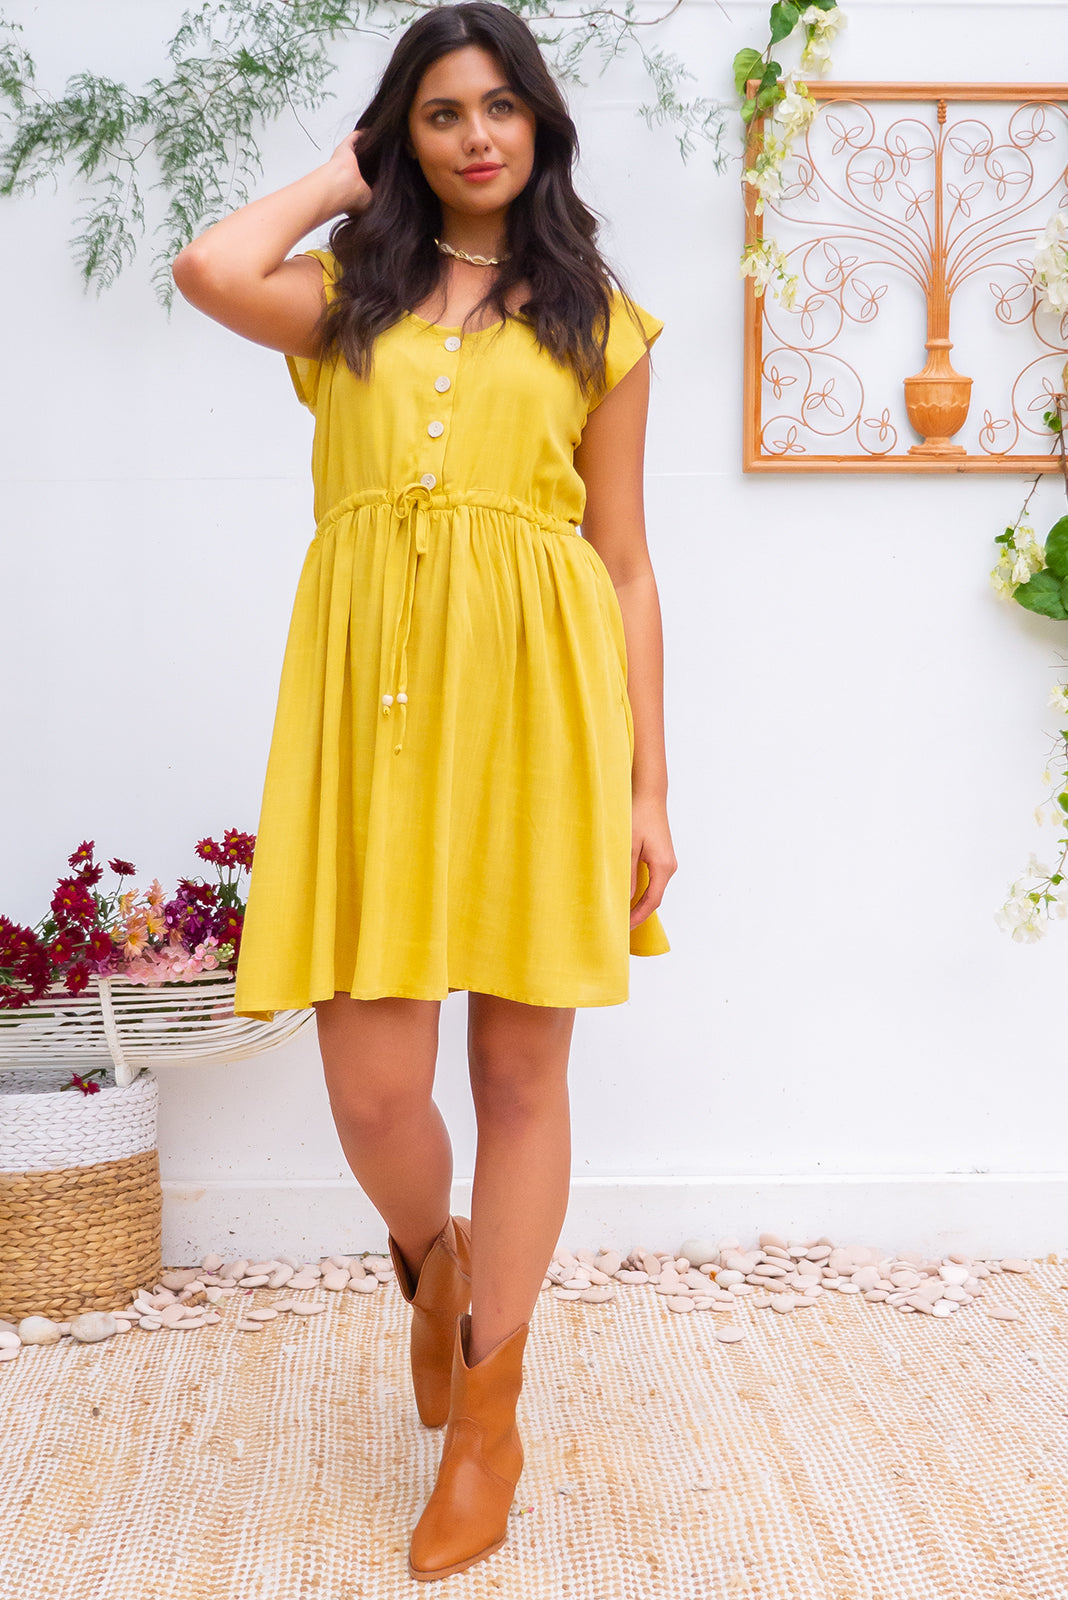 Juniper Space Gold Dress with a button front, cap sleeves, side pockets and a full skirt in textured 100% woven rayon plain gold colour, chic and effortless style